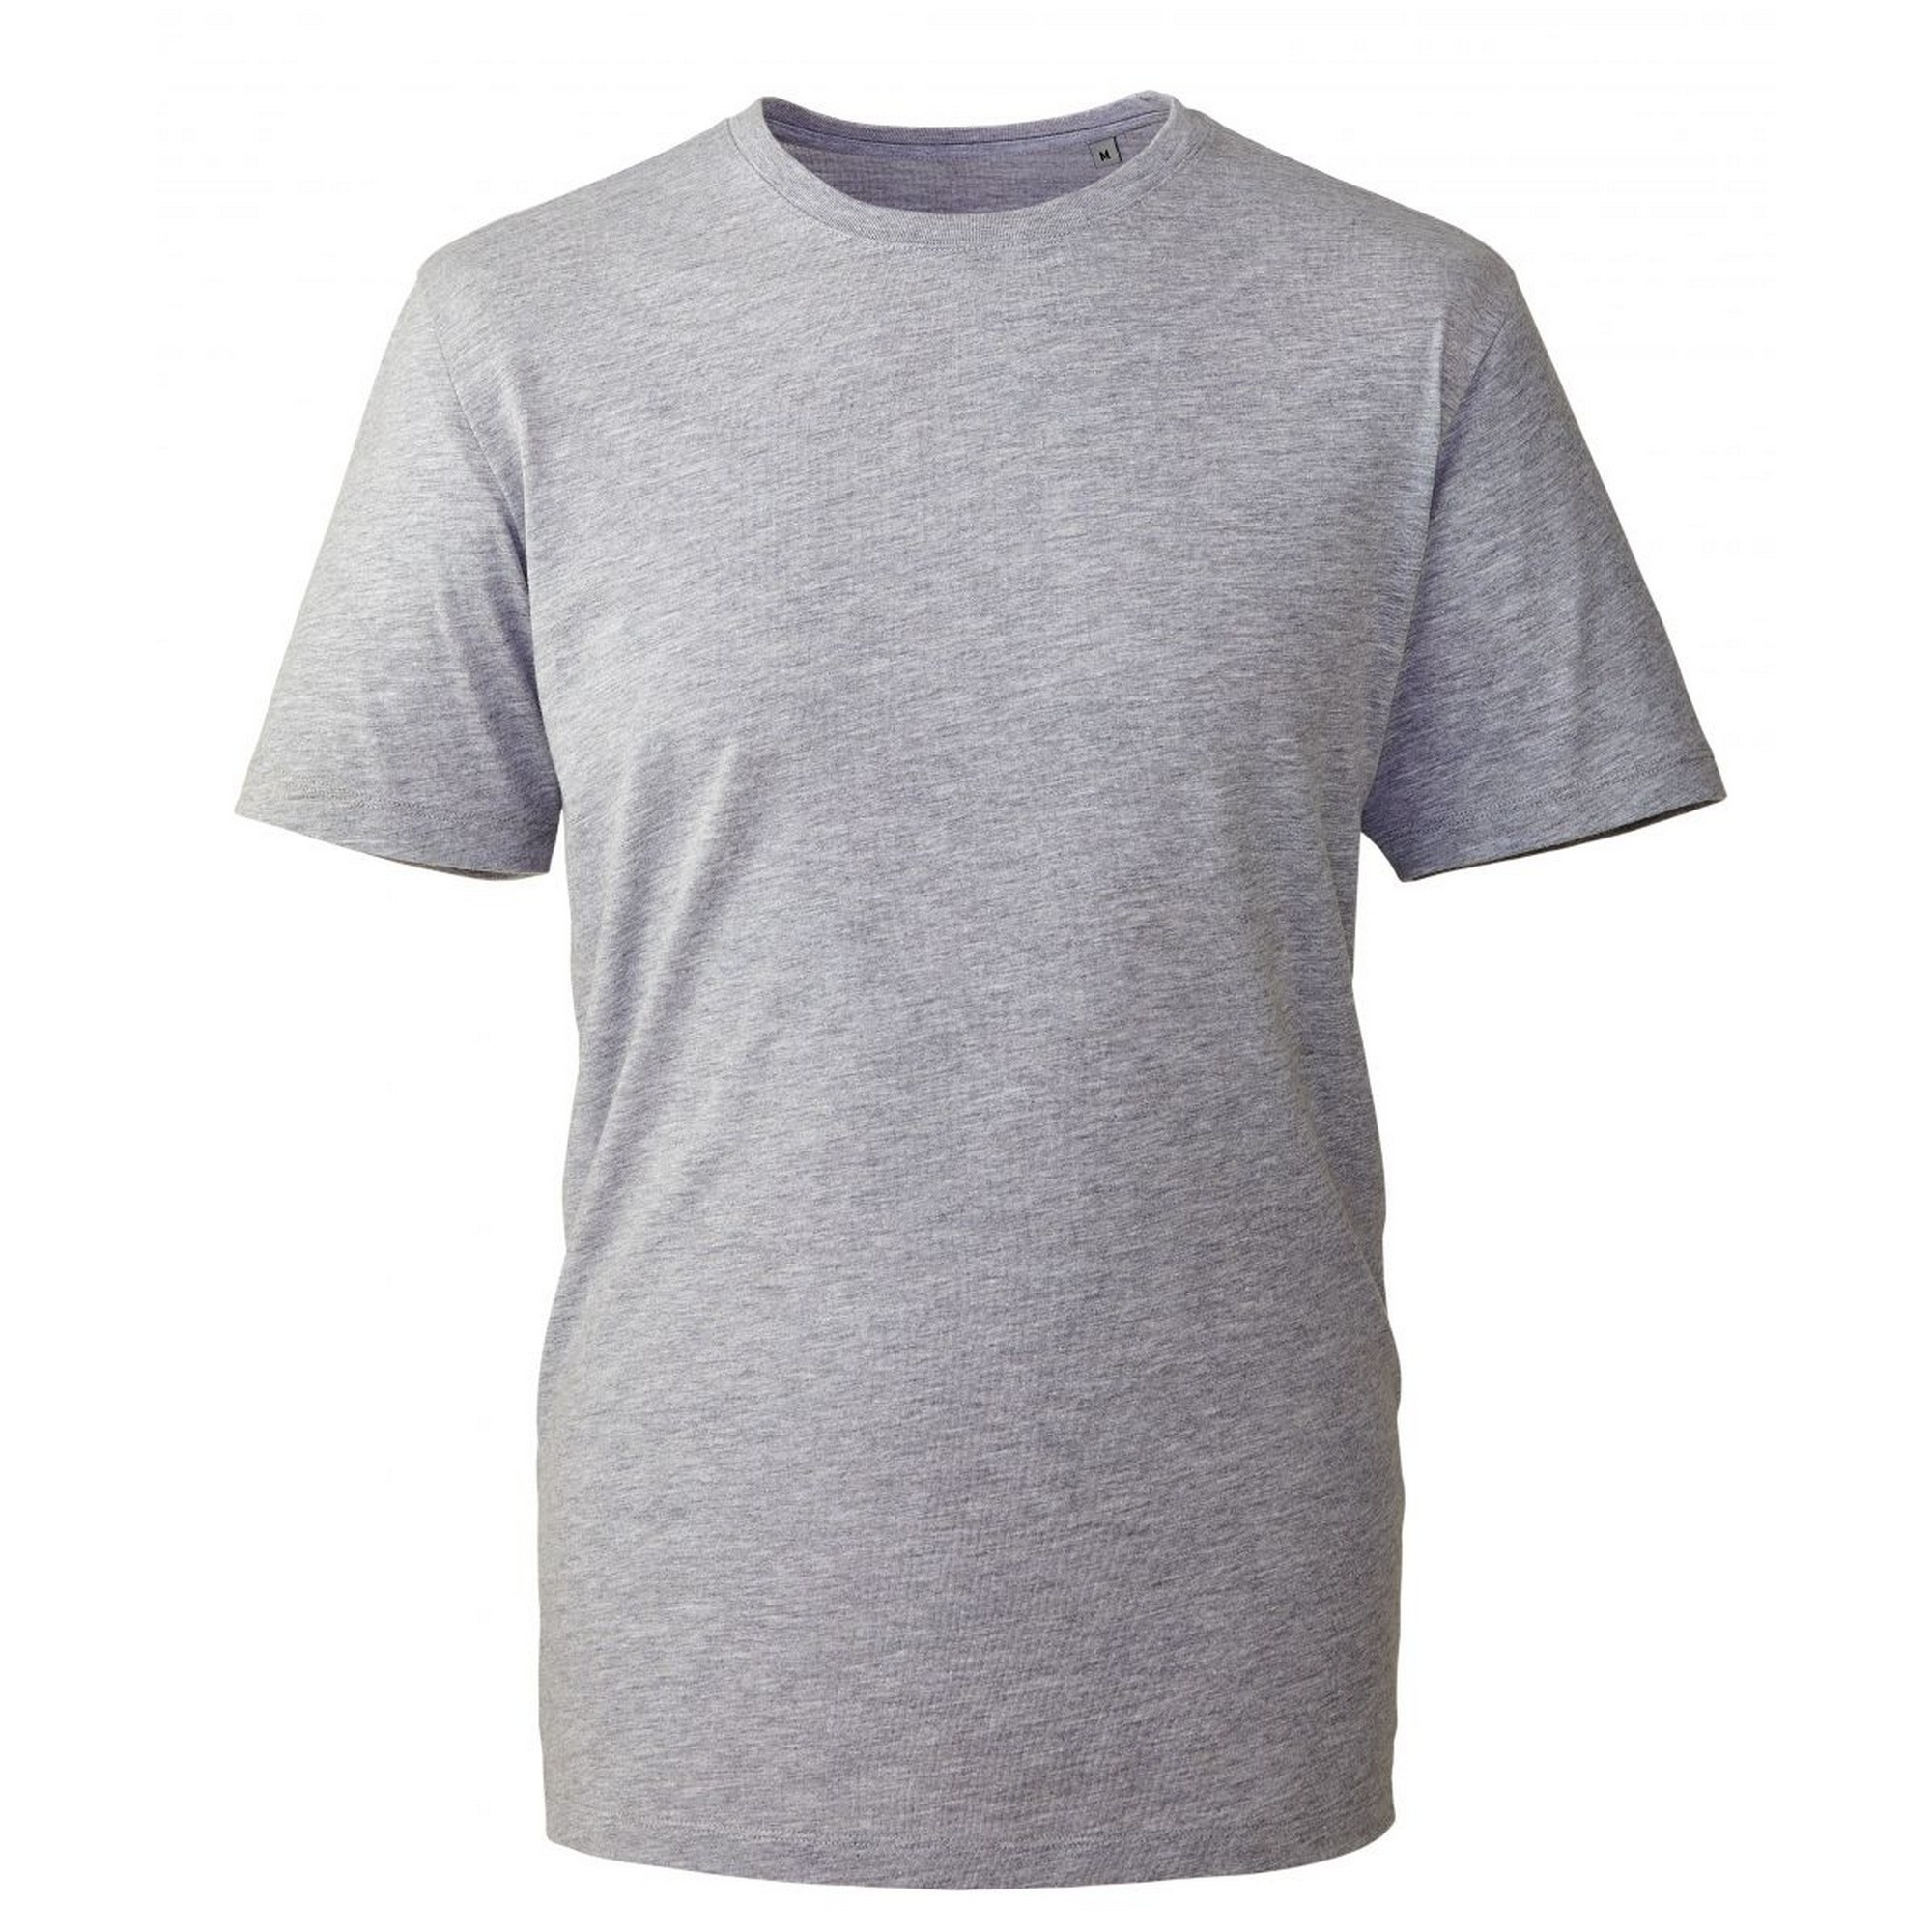 Anthem Mens Short Sleeve T-Shirt (5XL) (Grey Marl)